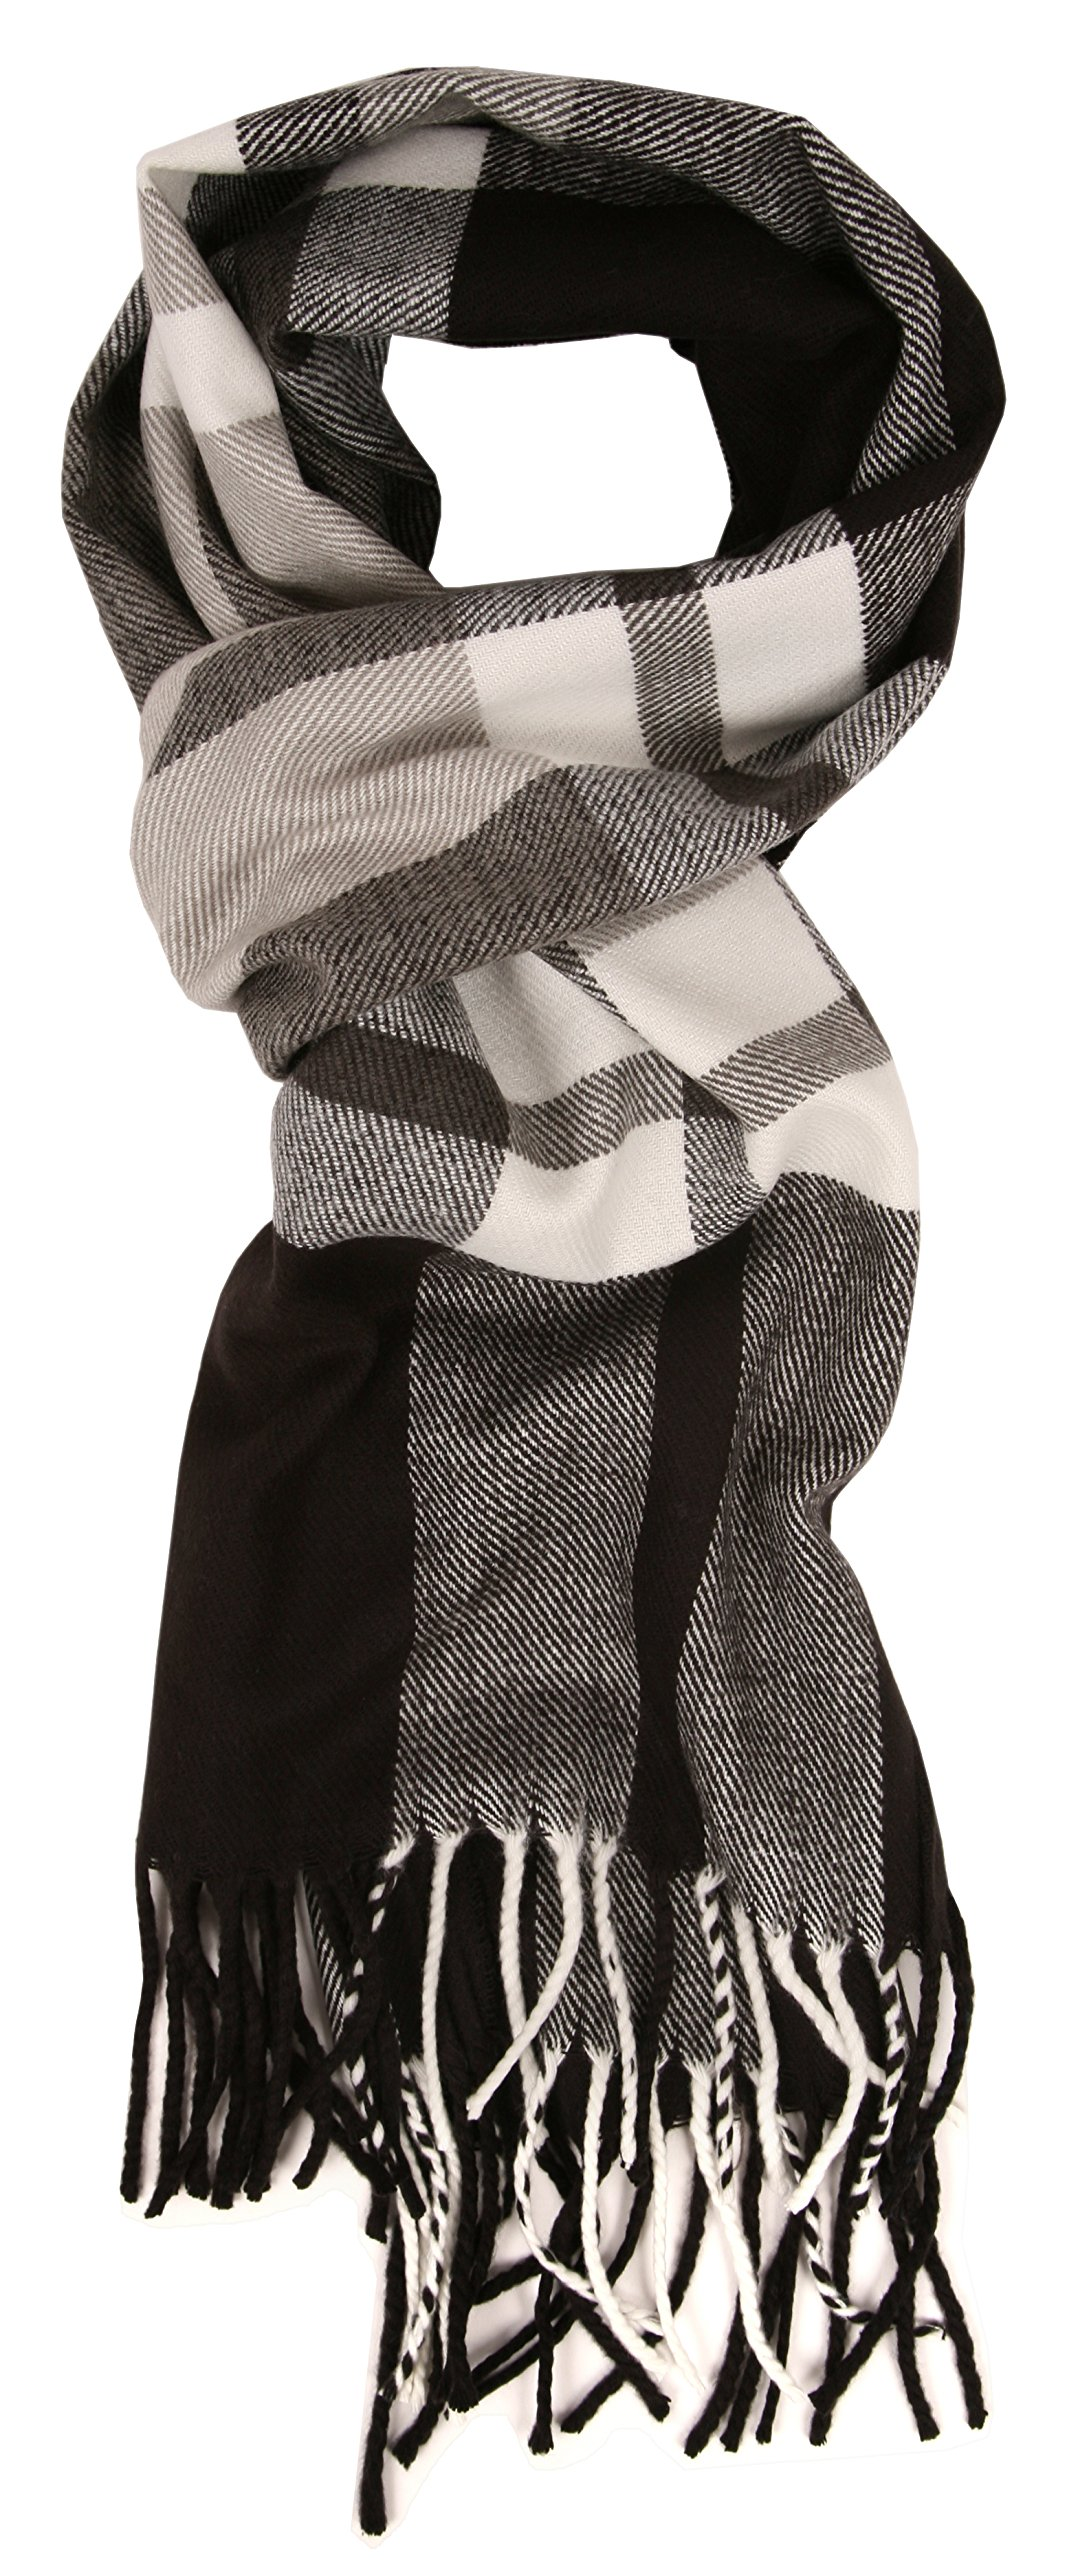 Love Lakeside-Men's Cashmere Feel Winter Plaid Scarf (One, 26-2 Black & White)